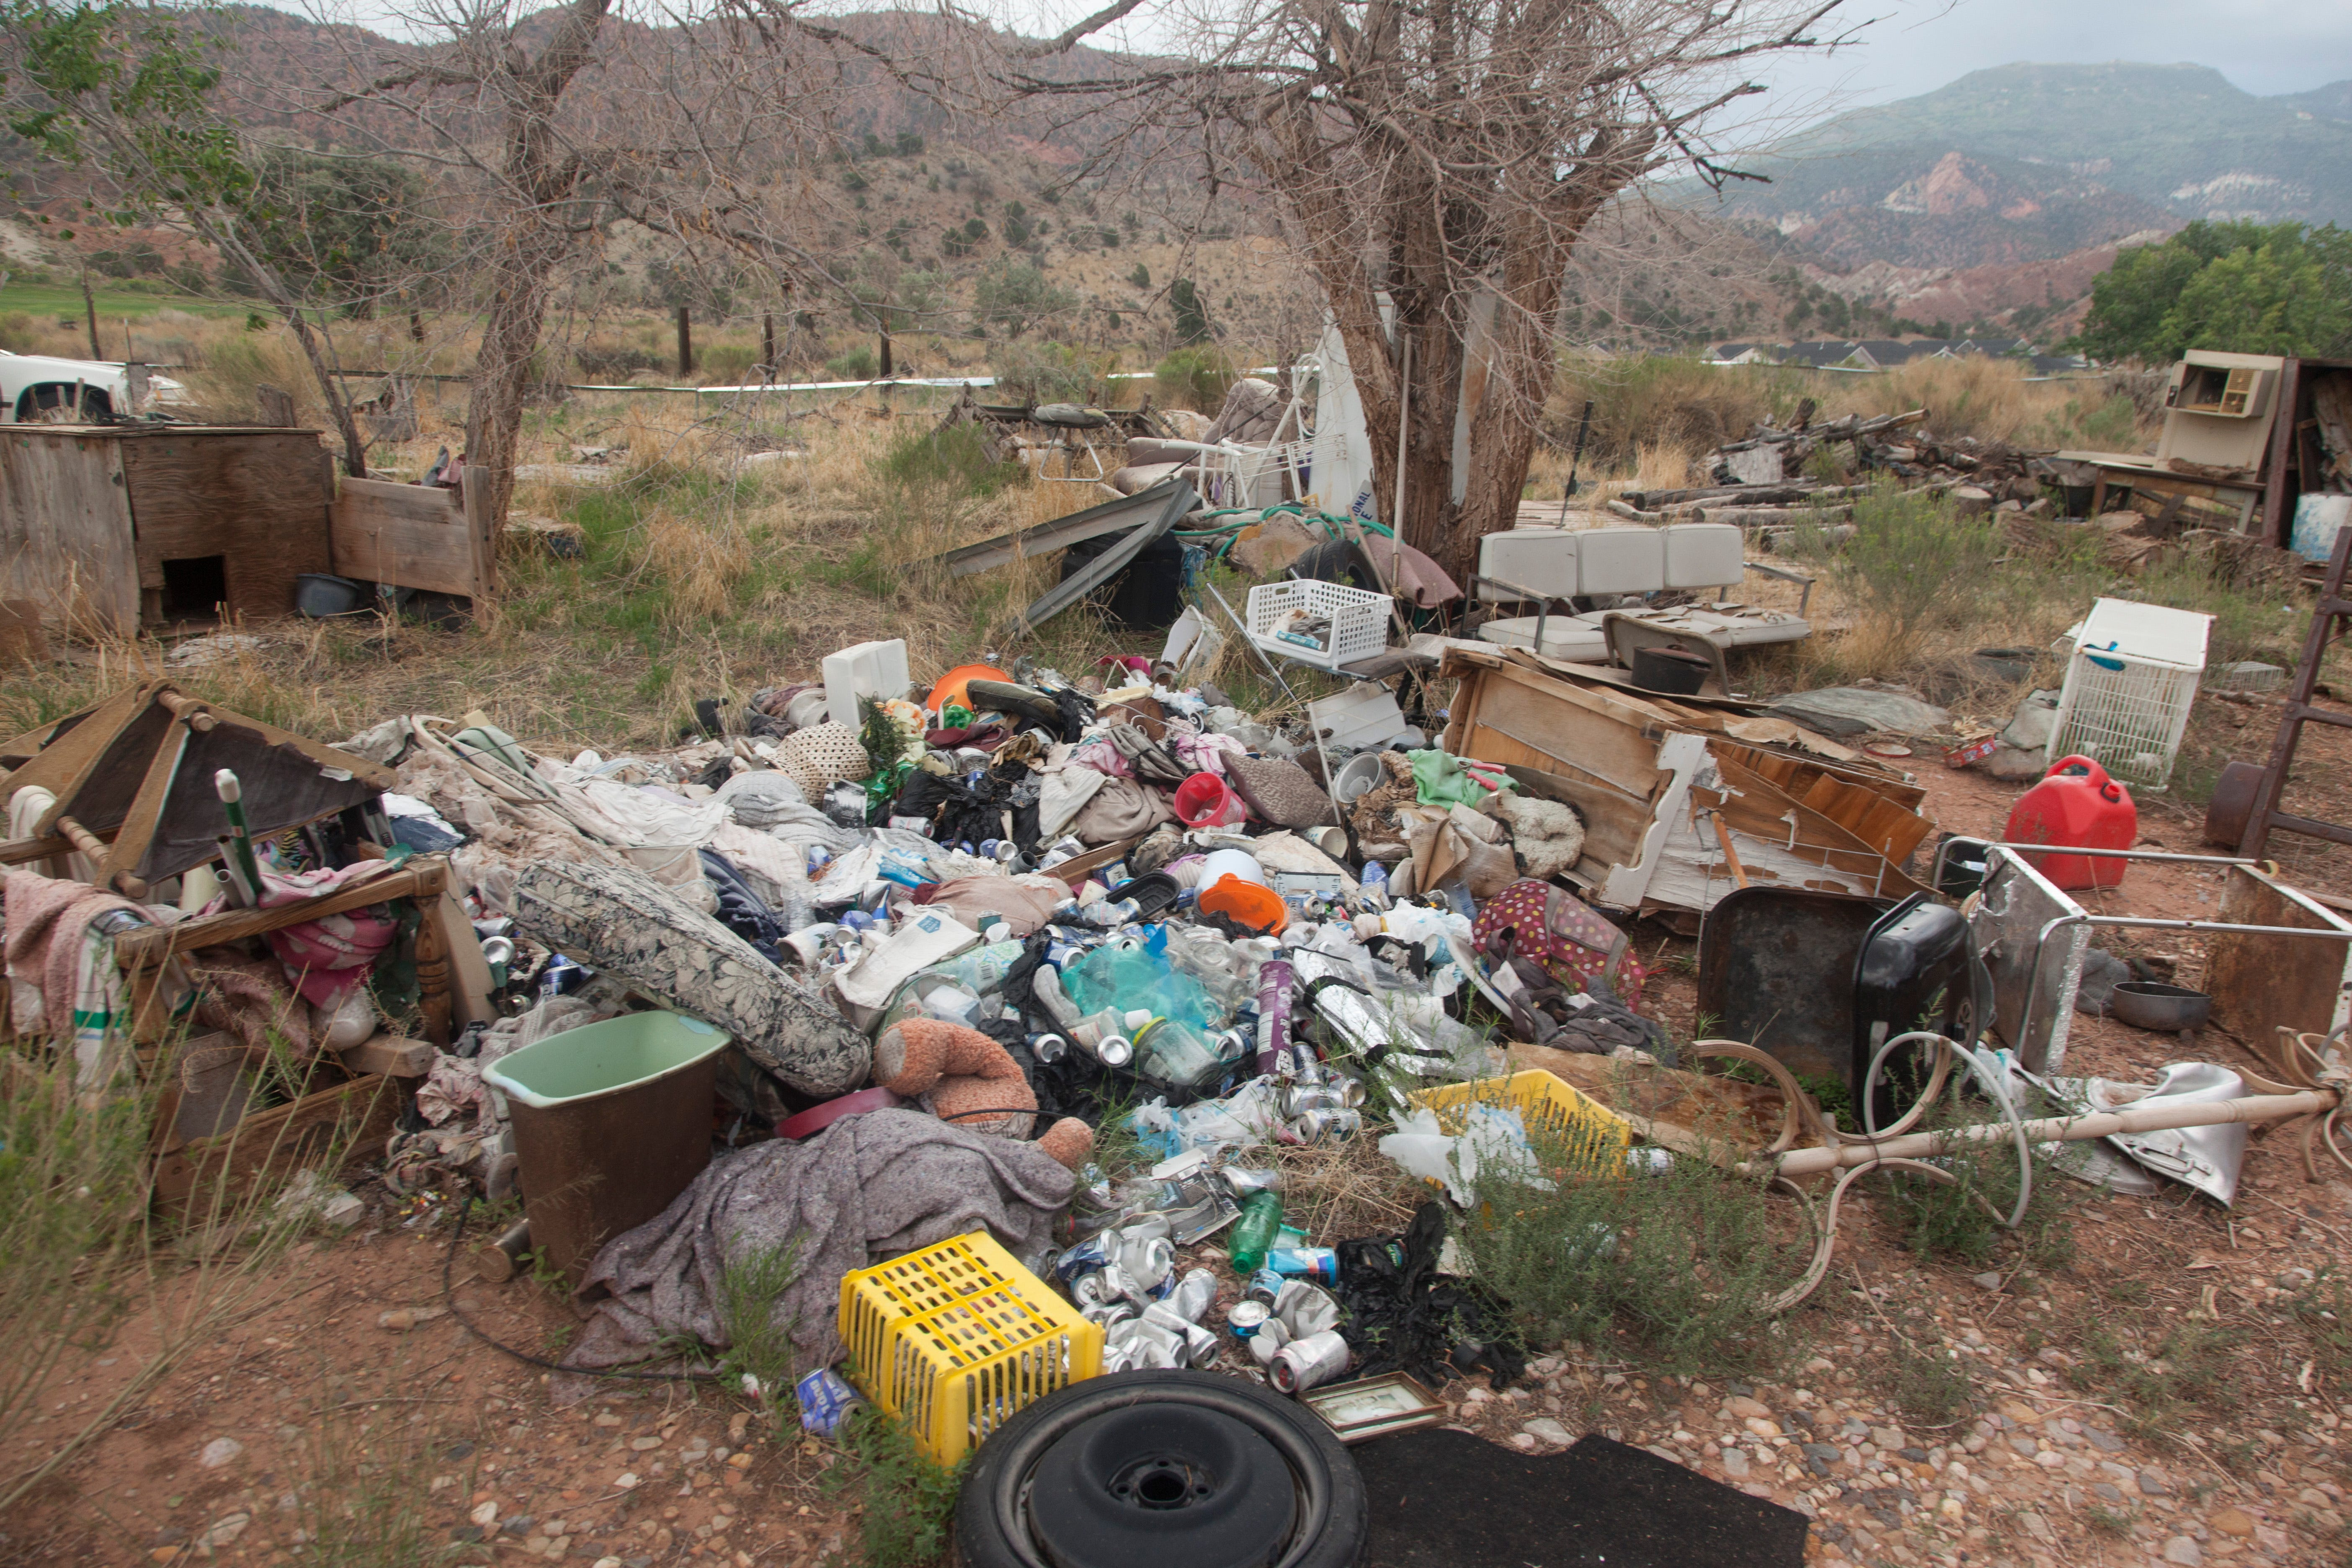 Despite the efforts of a few locals, unoccupied homes have become vulnerable to break-ins and illegal dumping in the Paiute reservation in Cedar City on Aug. 18.